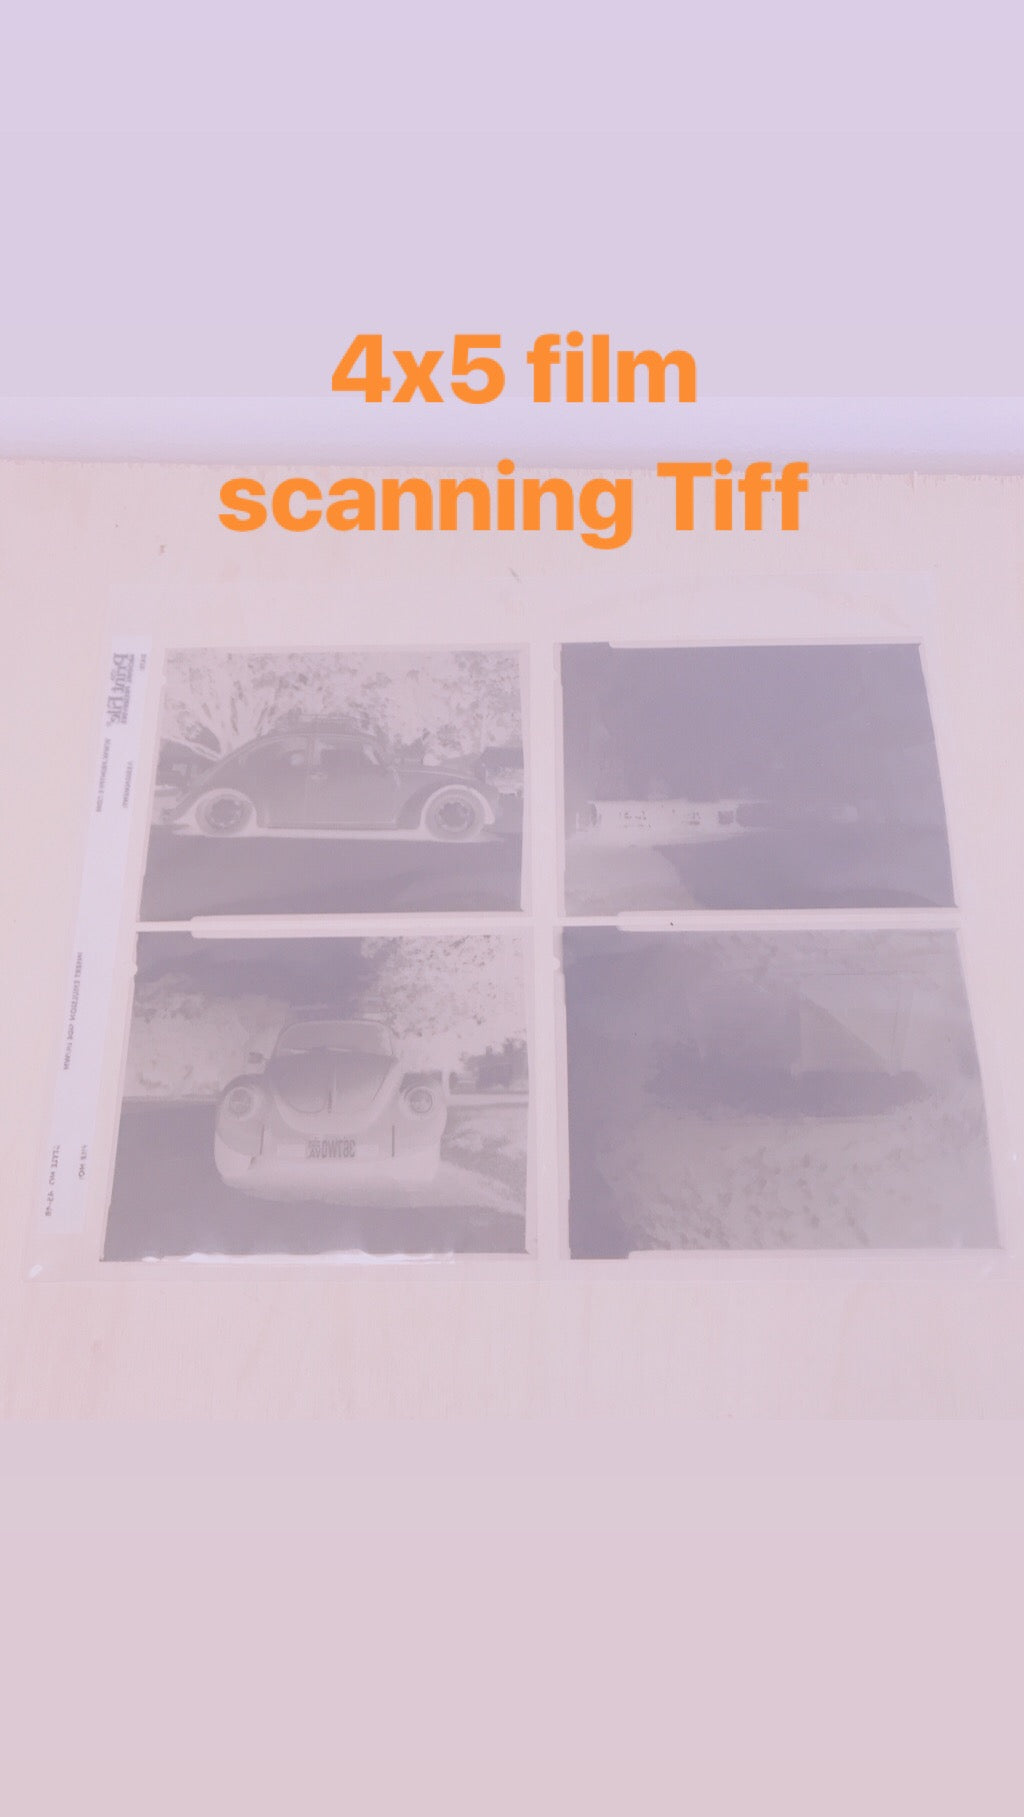 4x5 film Scanning per sheet Hi Res Tiff